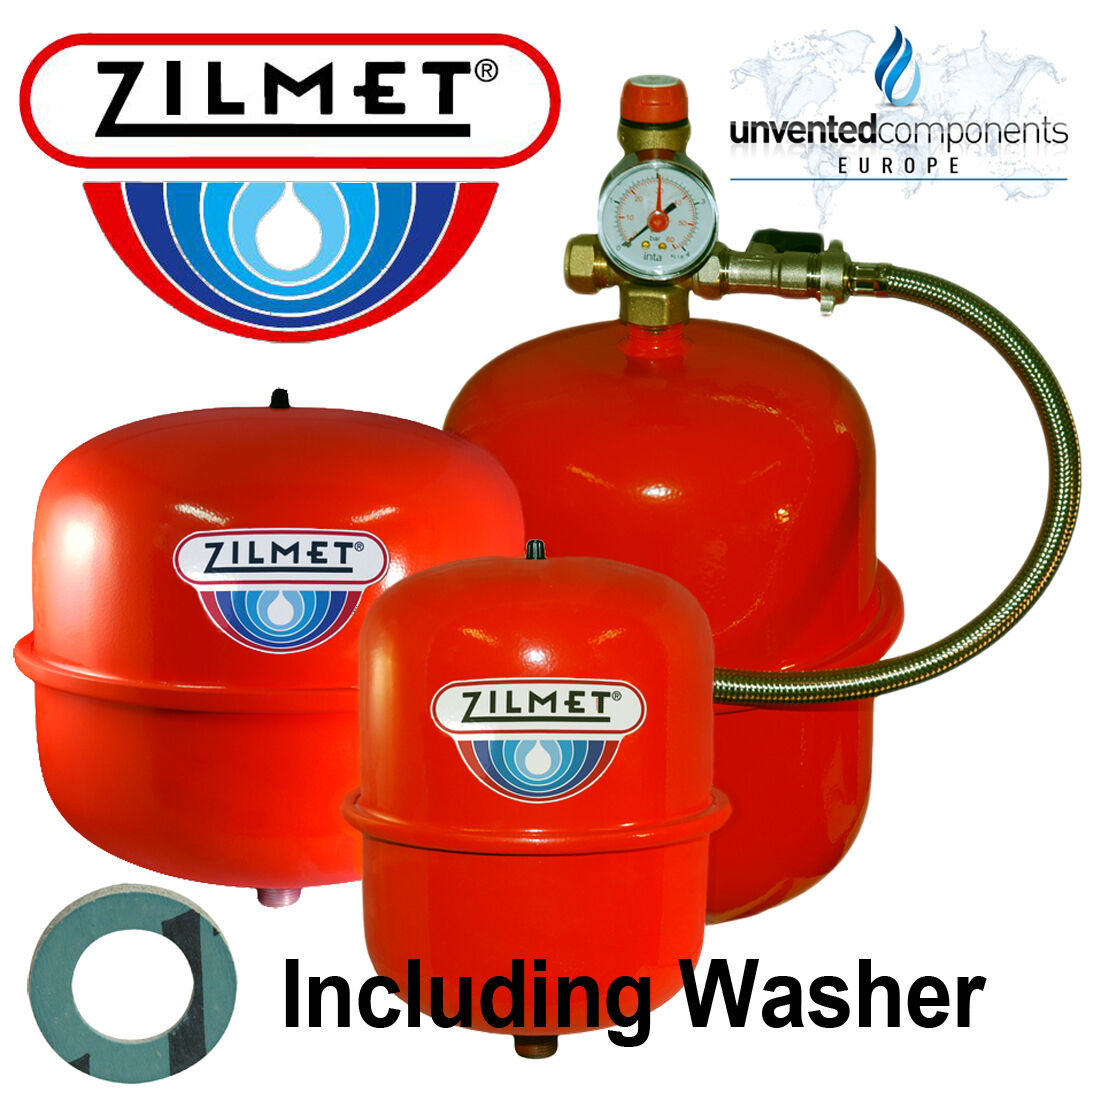 ZILMET ITALY RED Central Heating Expansion Vessel 8 12 18 24 Ltr + ...